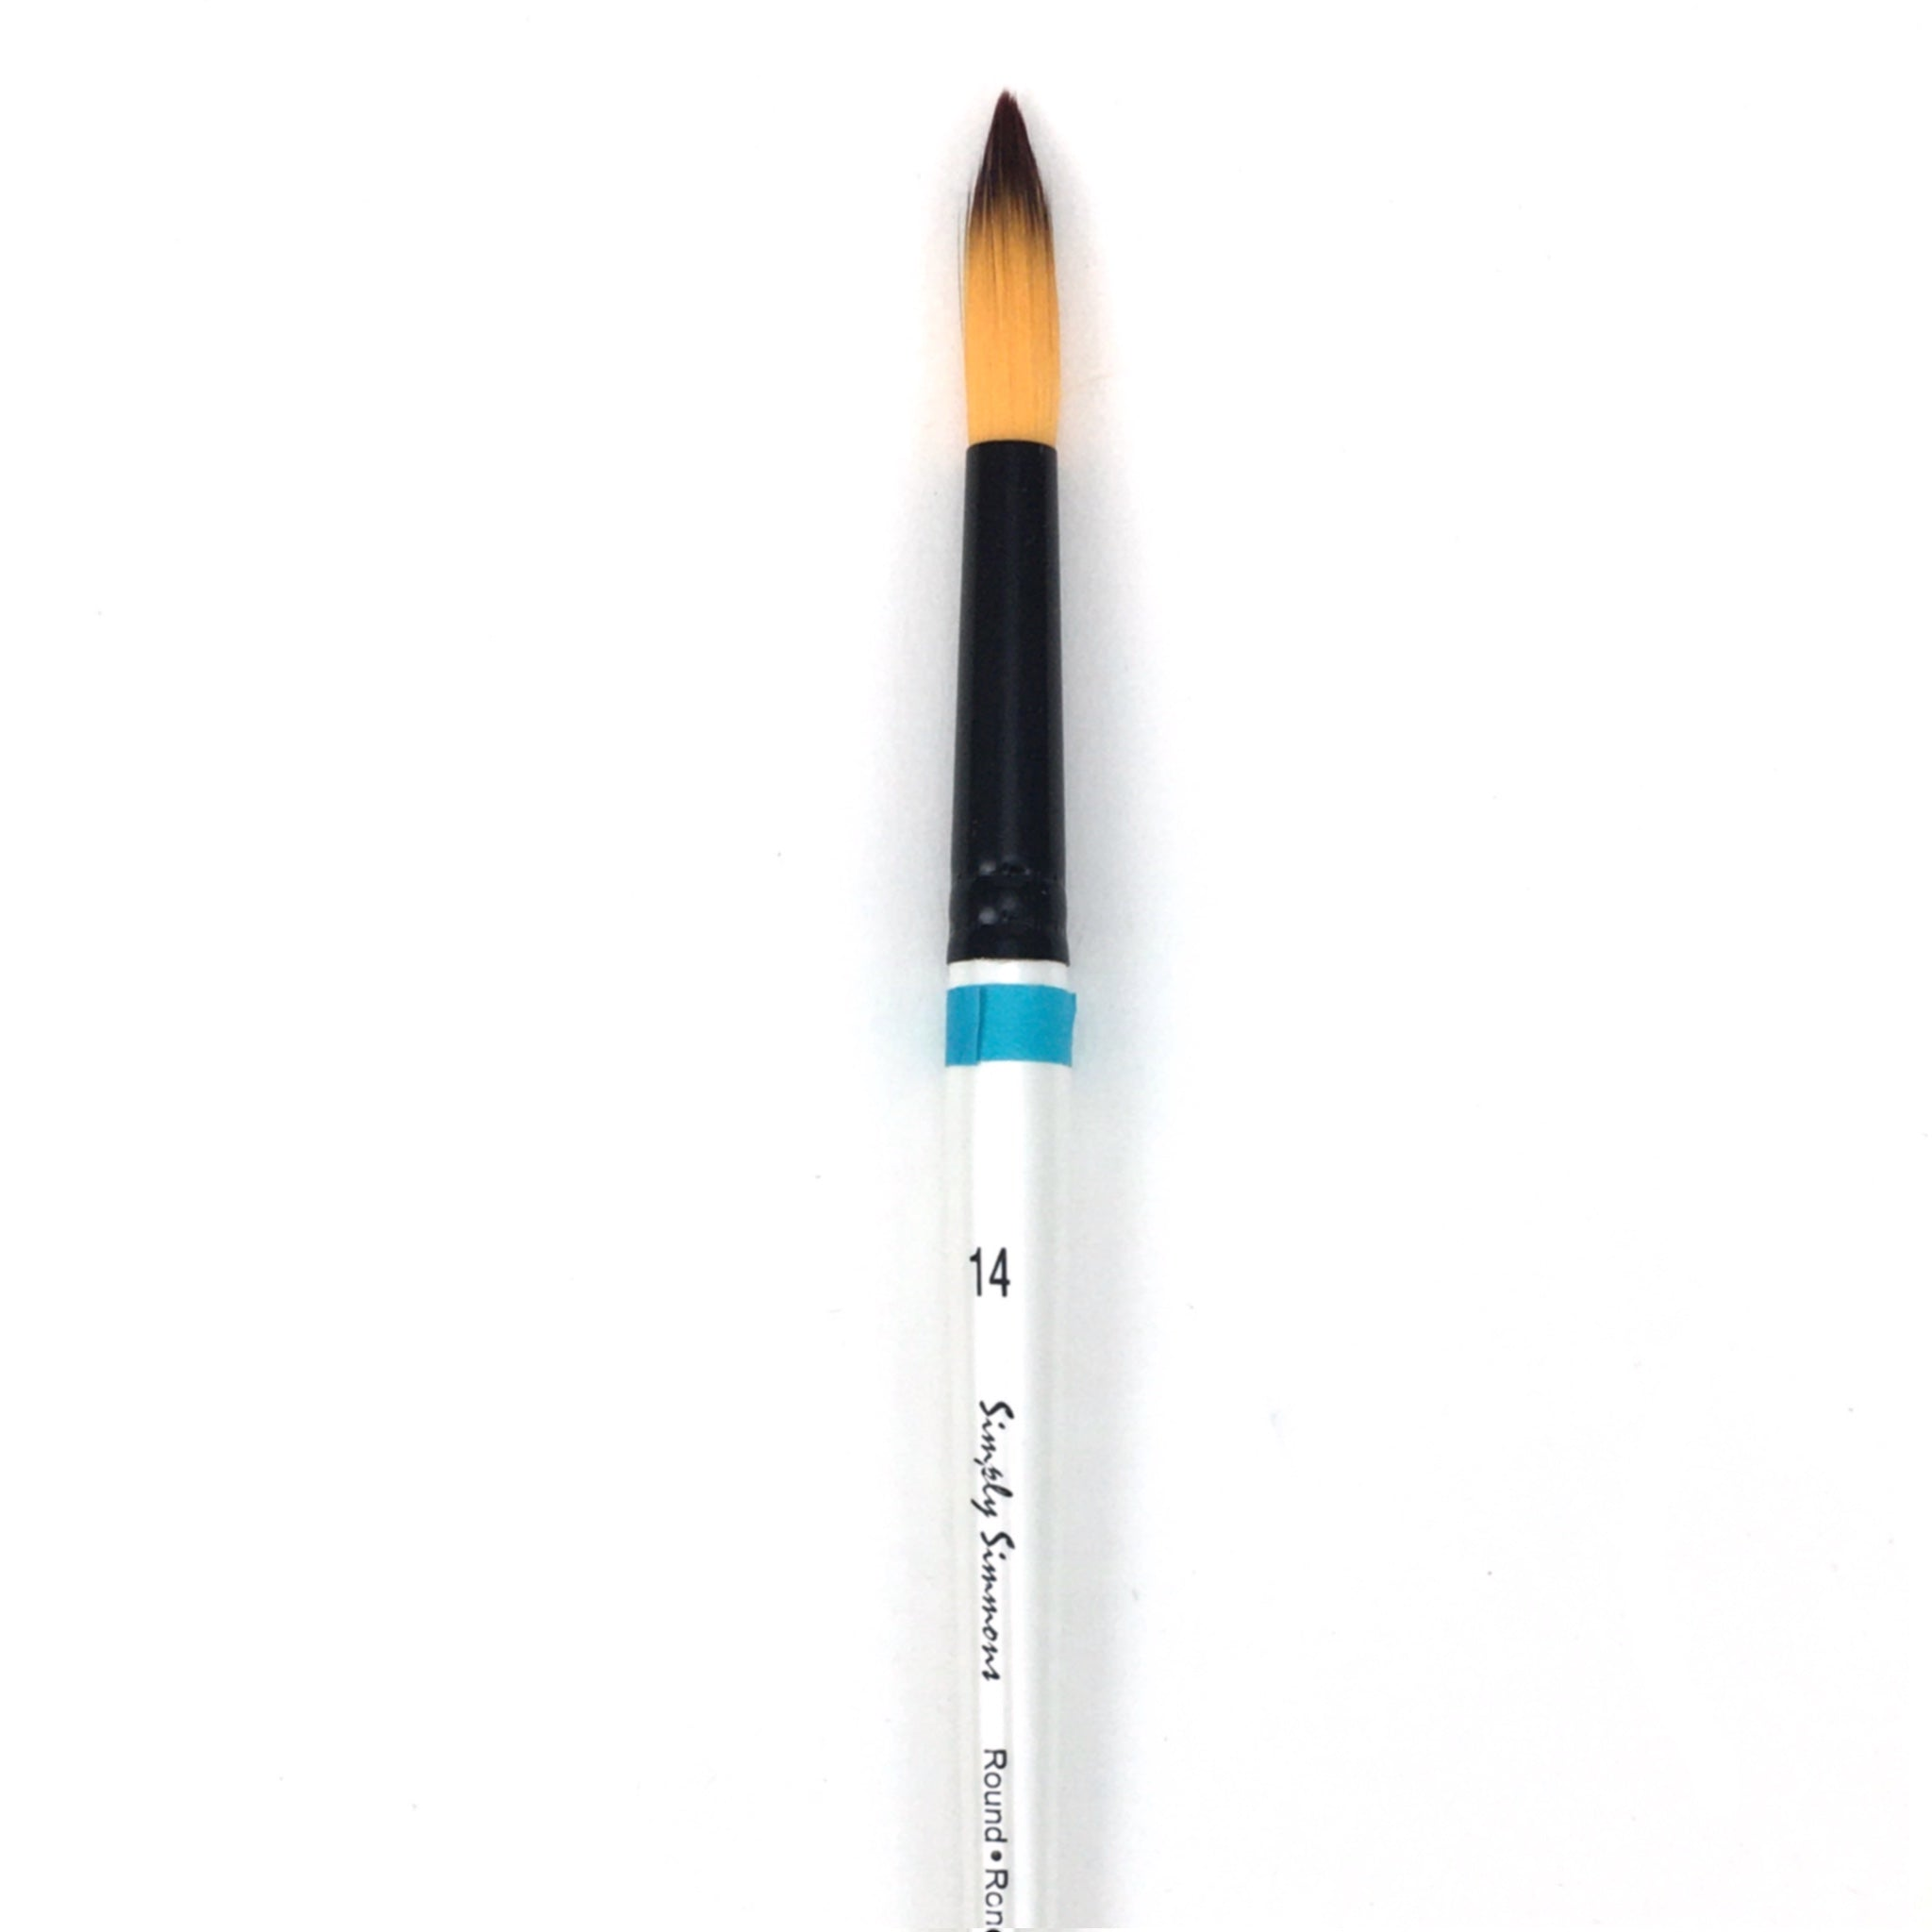 Robert Simmons Simply Simmons Watercolor Brush (Short Handle) - Round / - #14 / - synthetic by Robert Simmons - K. A. Artist Shop